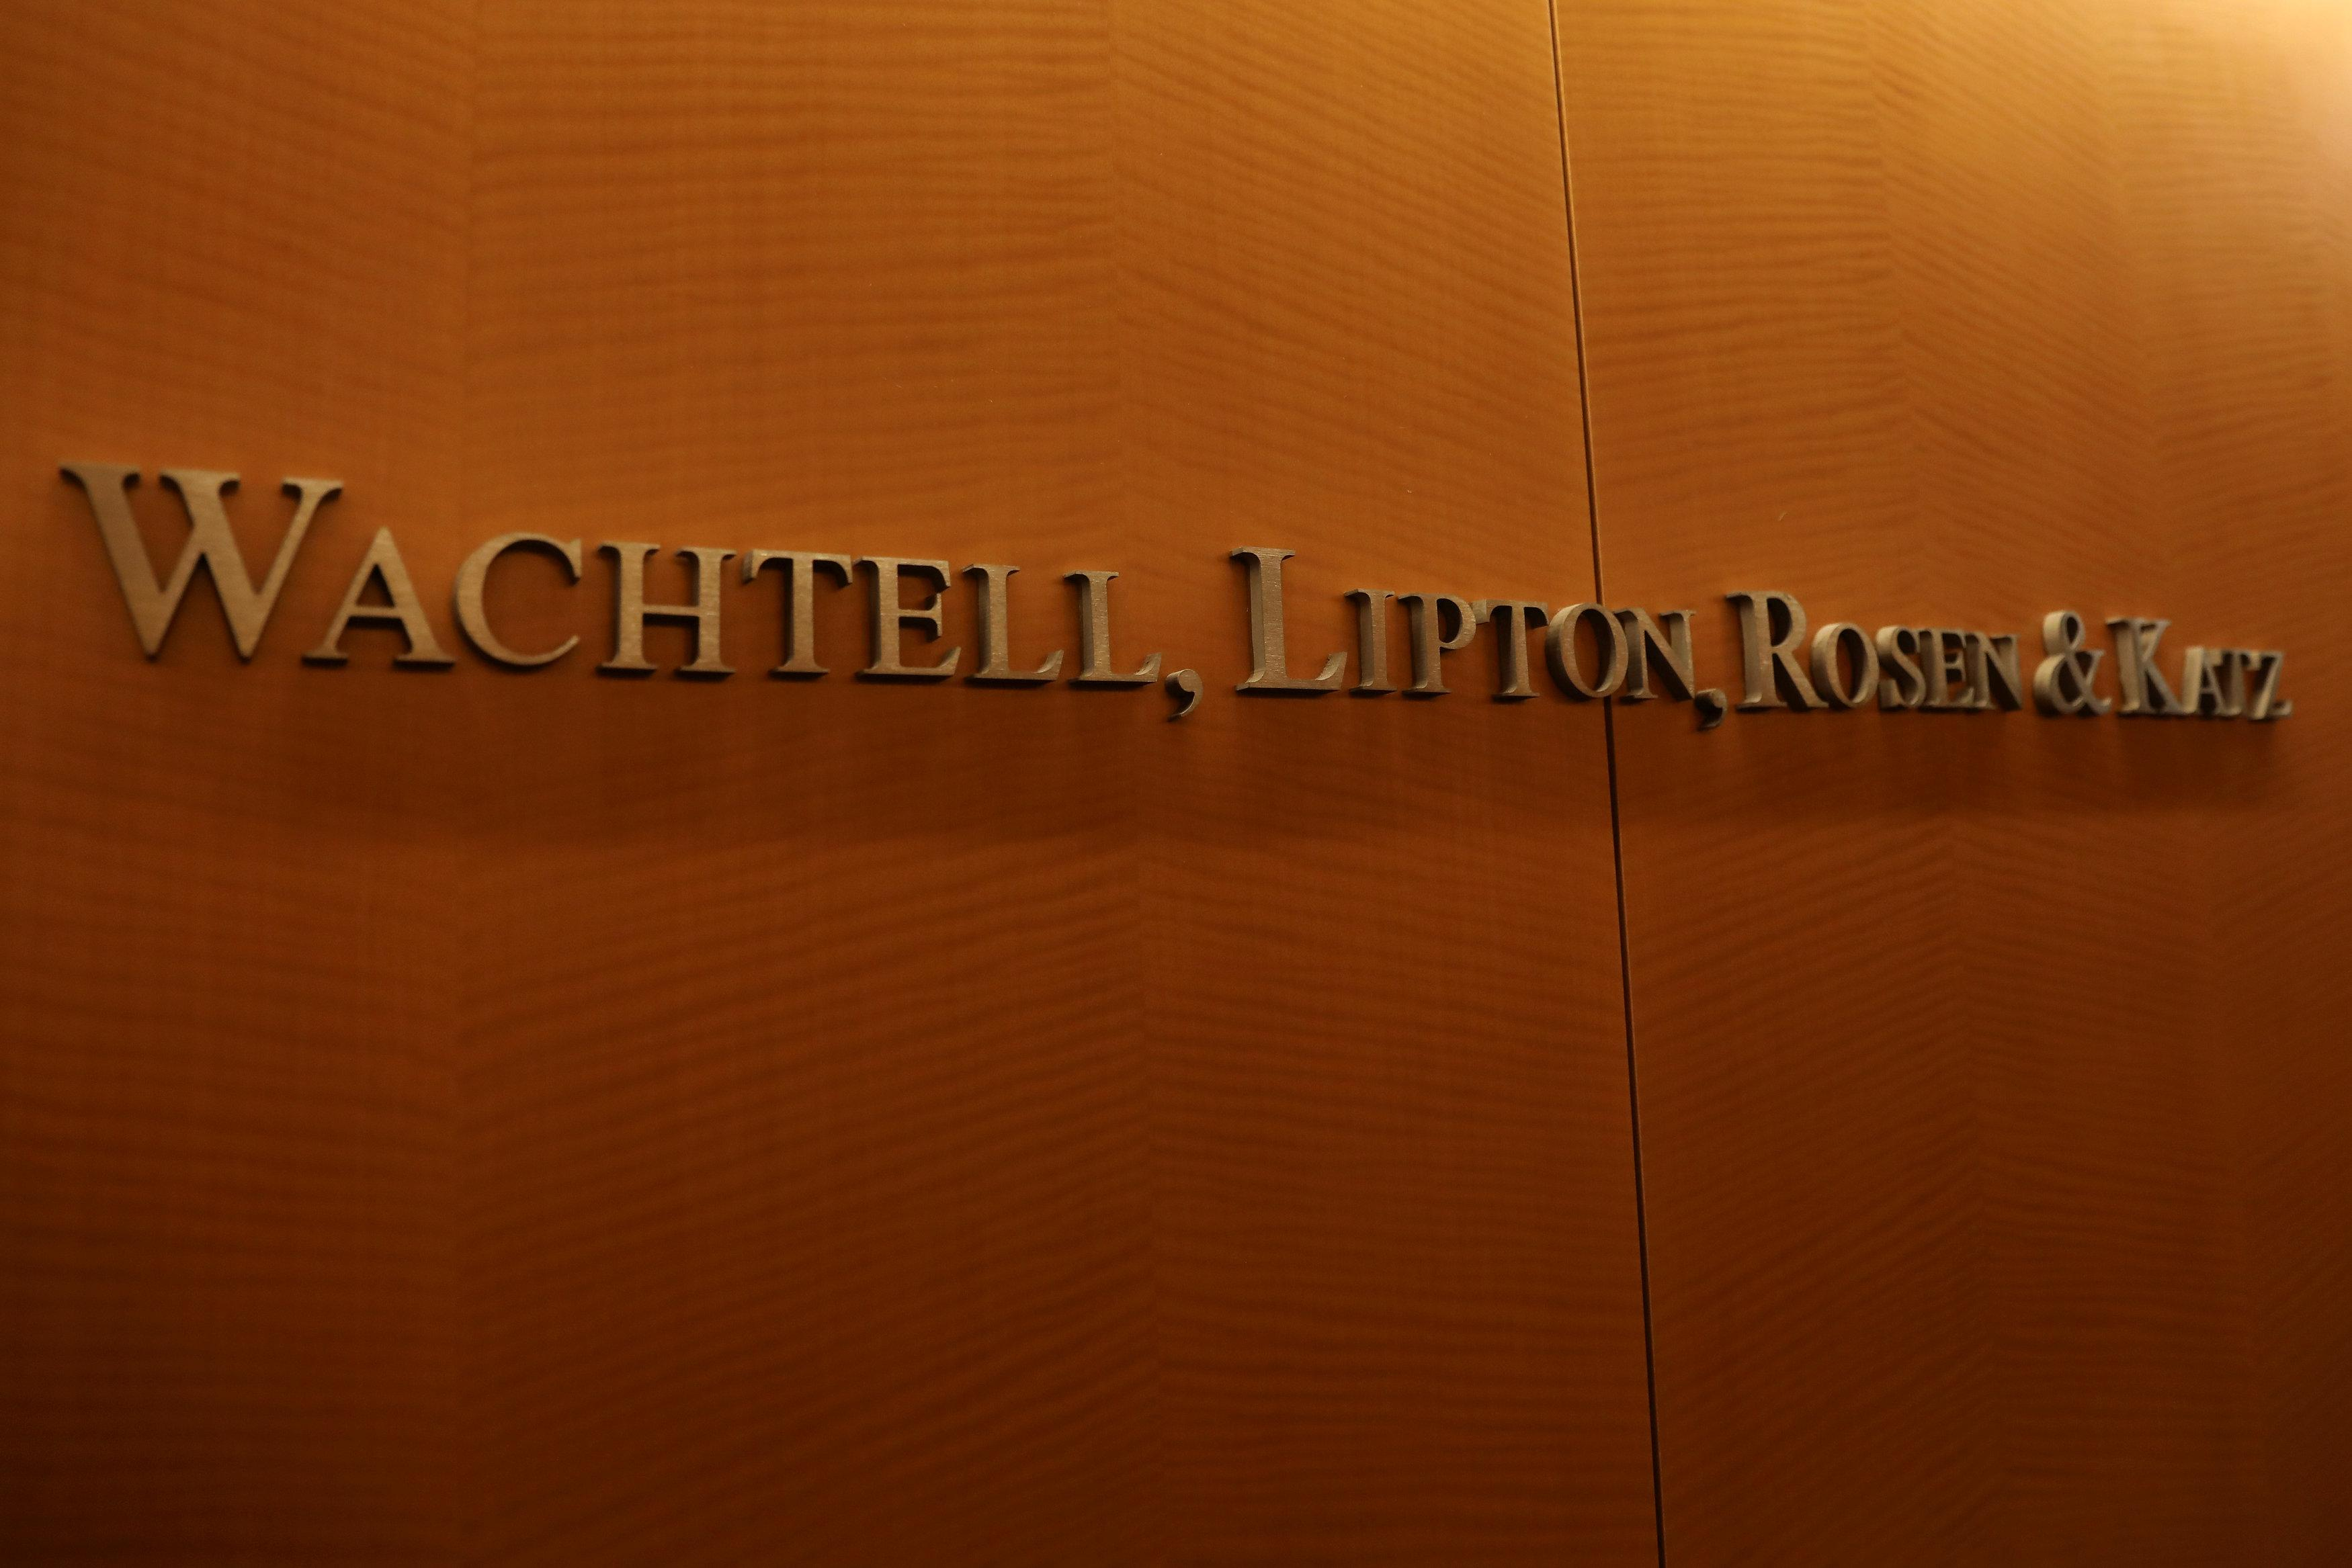 Small is lucrative for Wachtell, corporate America's legal